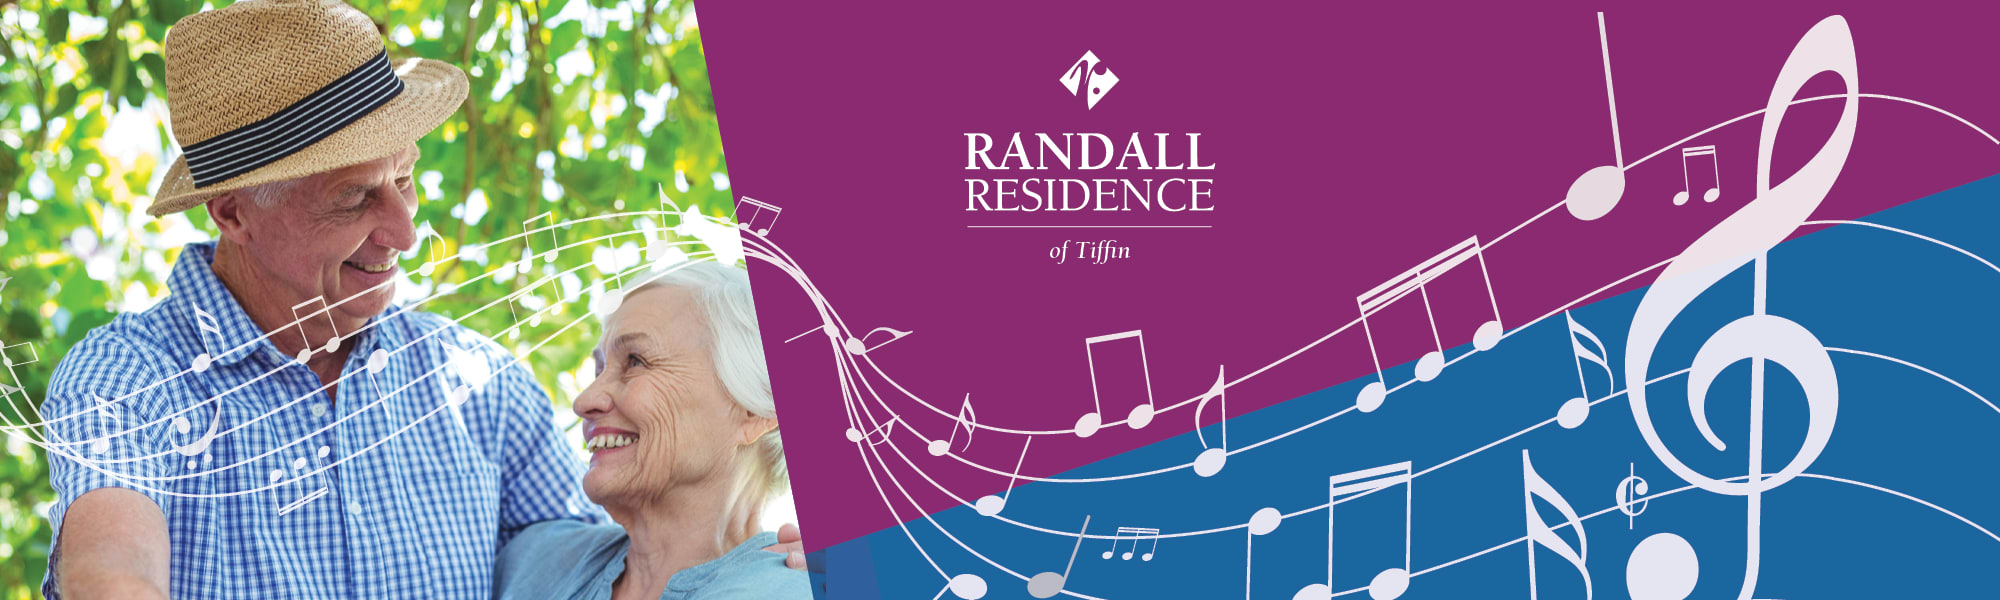 Events at Randall Residence of Tiffin in Tiffin, Ohio